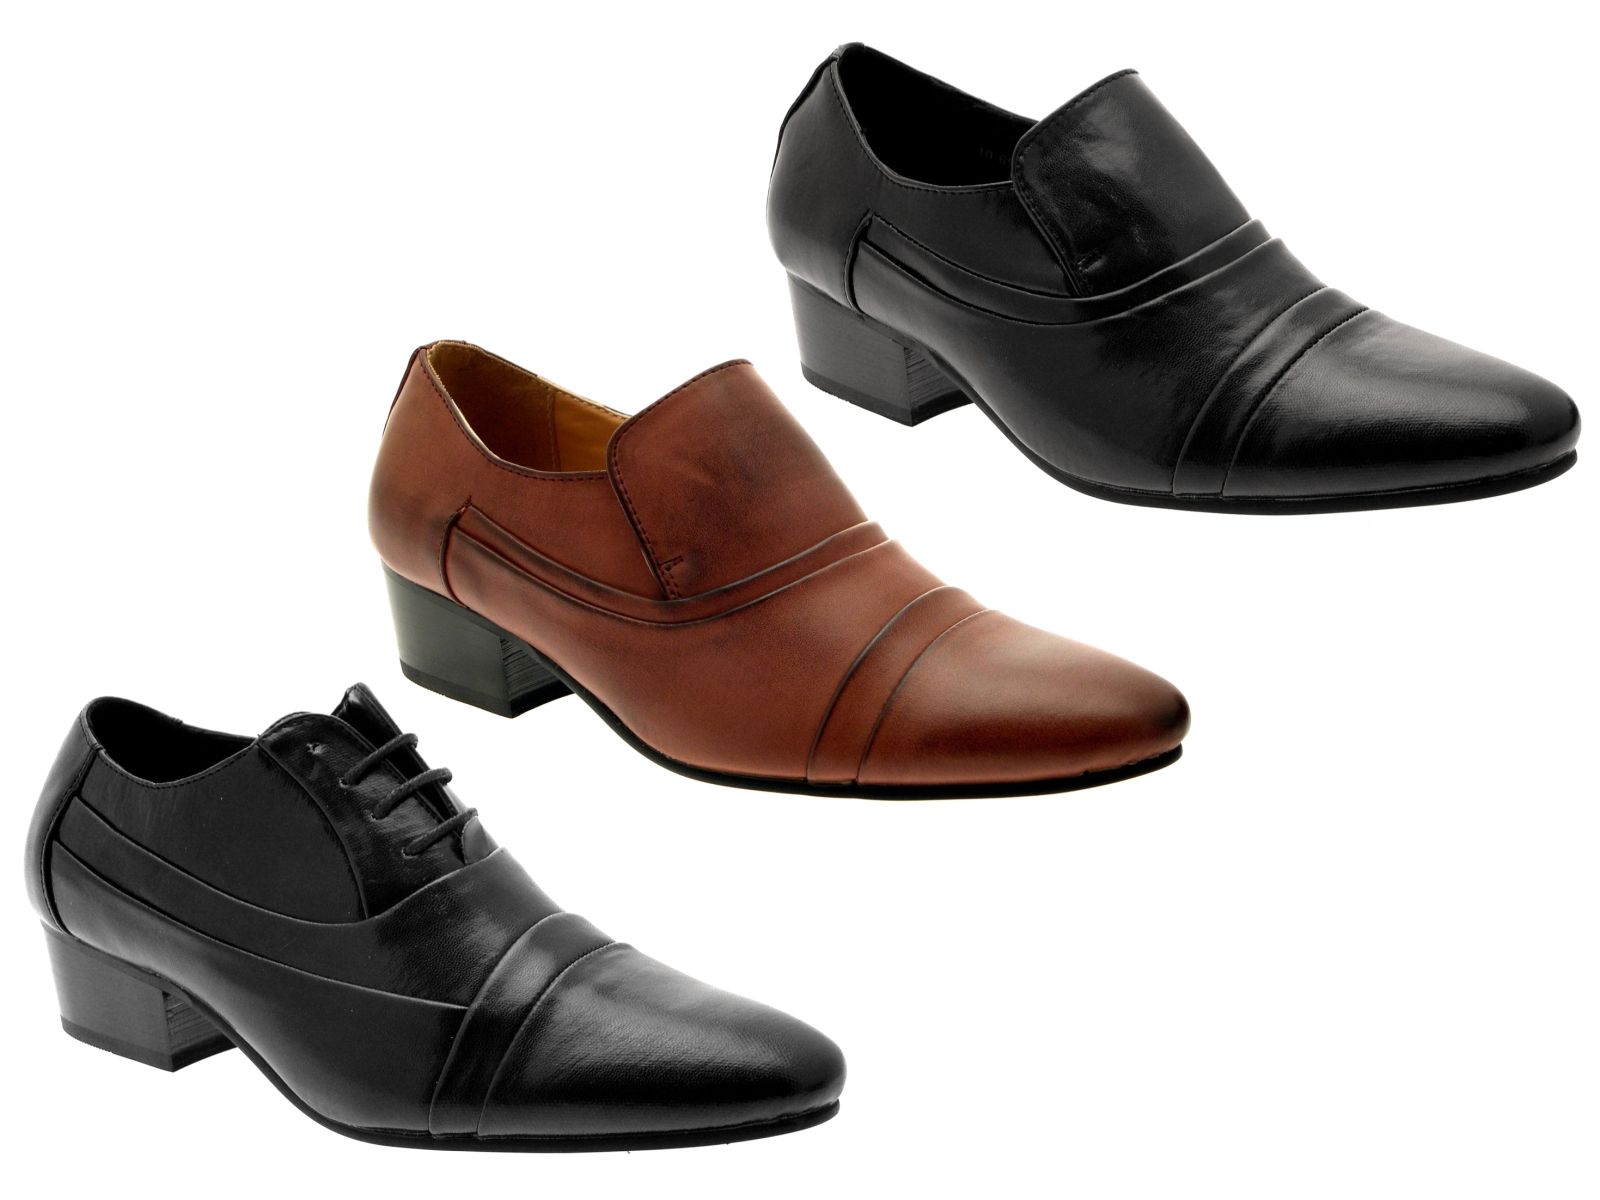 BRAND NEW MEN'S SMART WEDDING FORMAL PATENT LACE UP SLIP ON SHOES UK SIZE 6-11